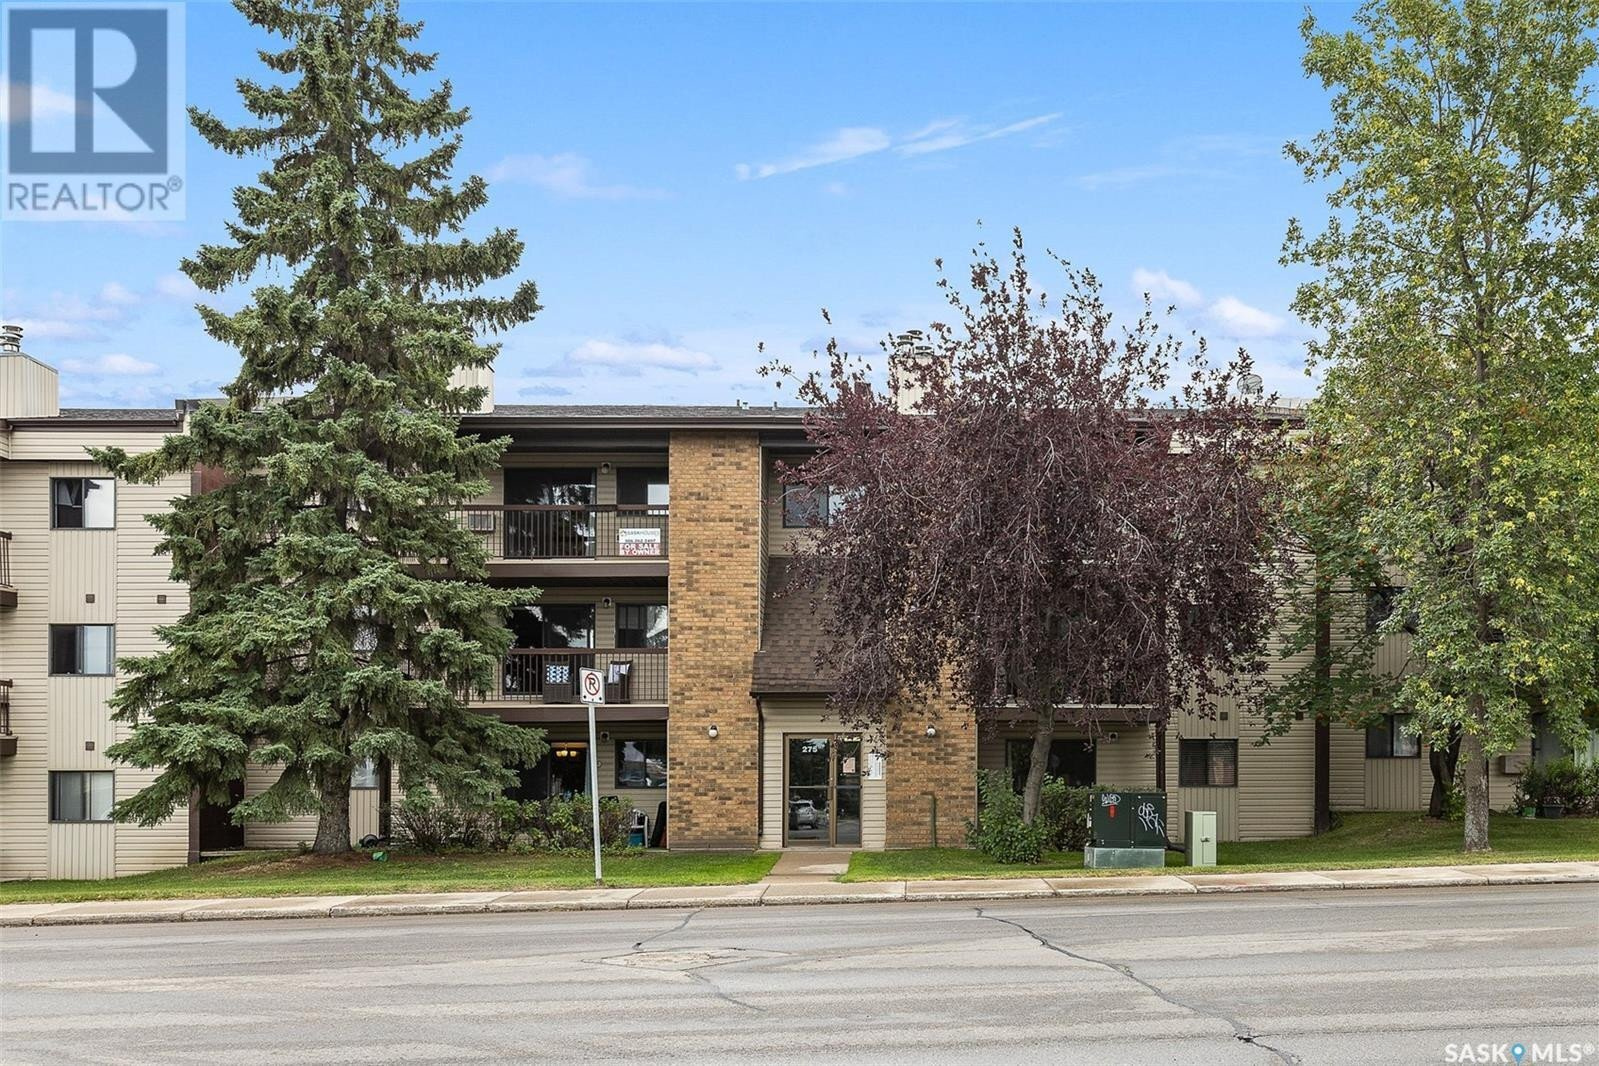 Condo for sale at 275 Kingsmere Blvd Unit 302 Saskatoon Saskatchewan - MLS: SK833907